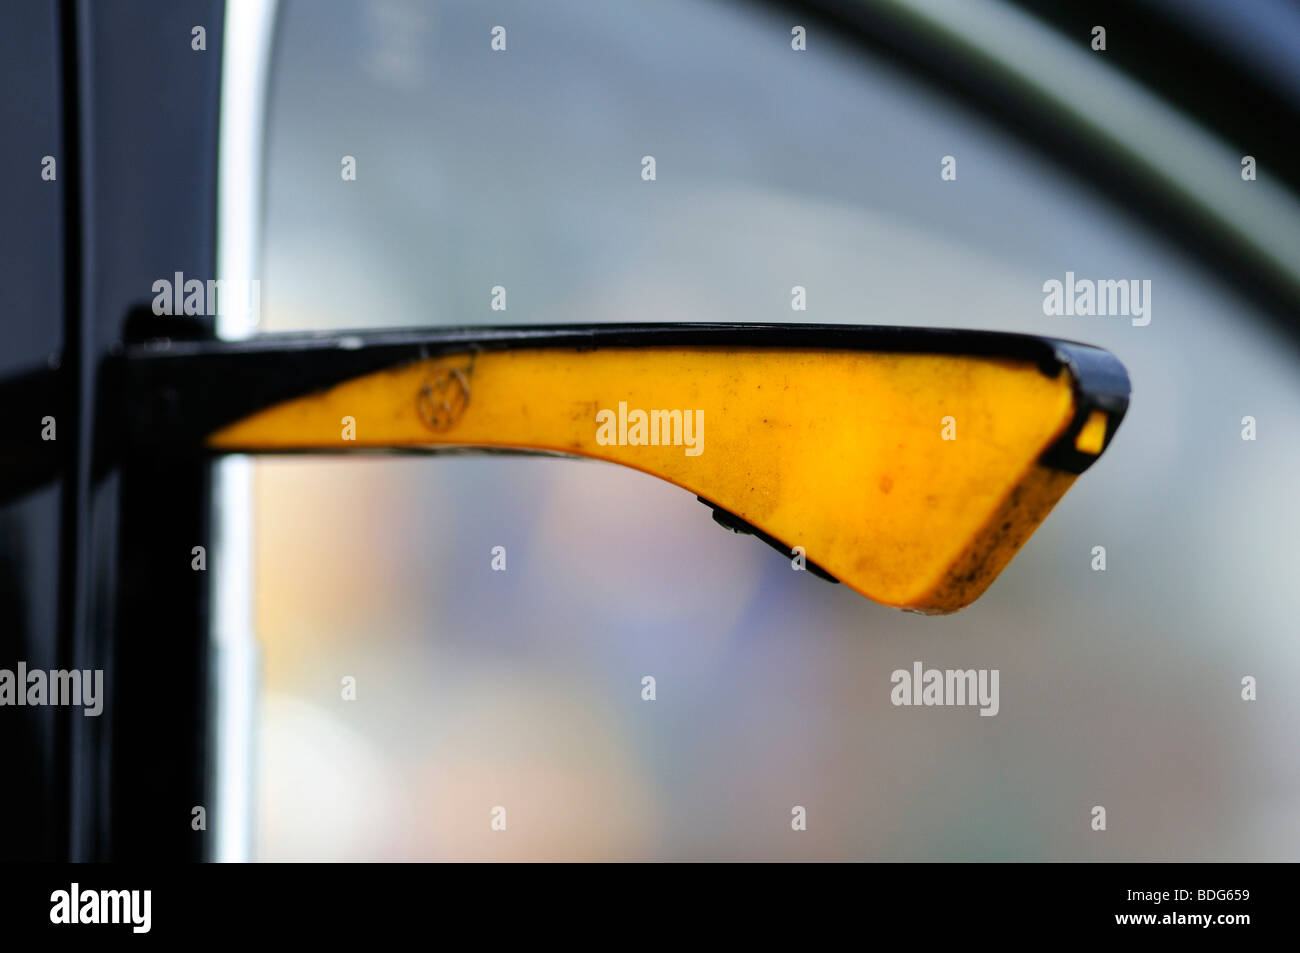 Direction indicator of an old VW Beetle, Germany - Stock Image